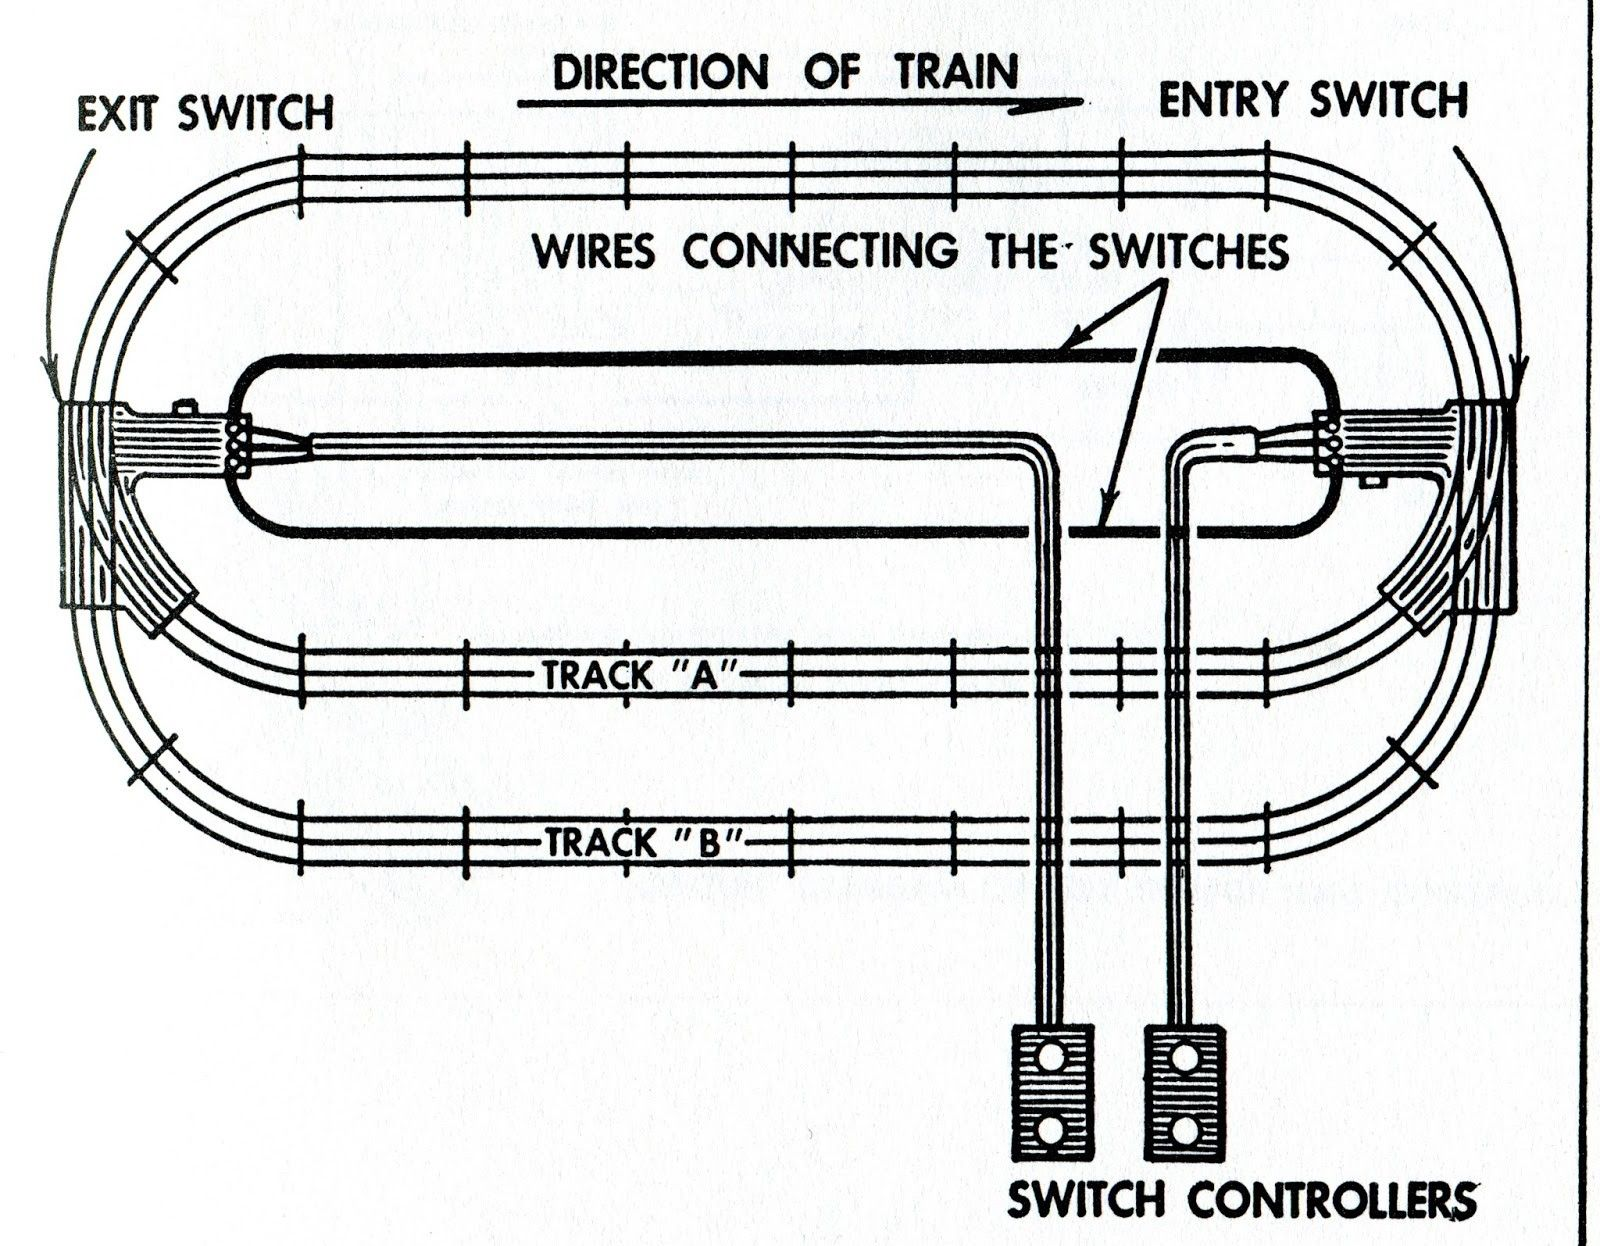 Lionel Train Wiring Guide In 2020 Lionel Trains Model Train Layouts Model Train Sets